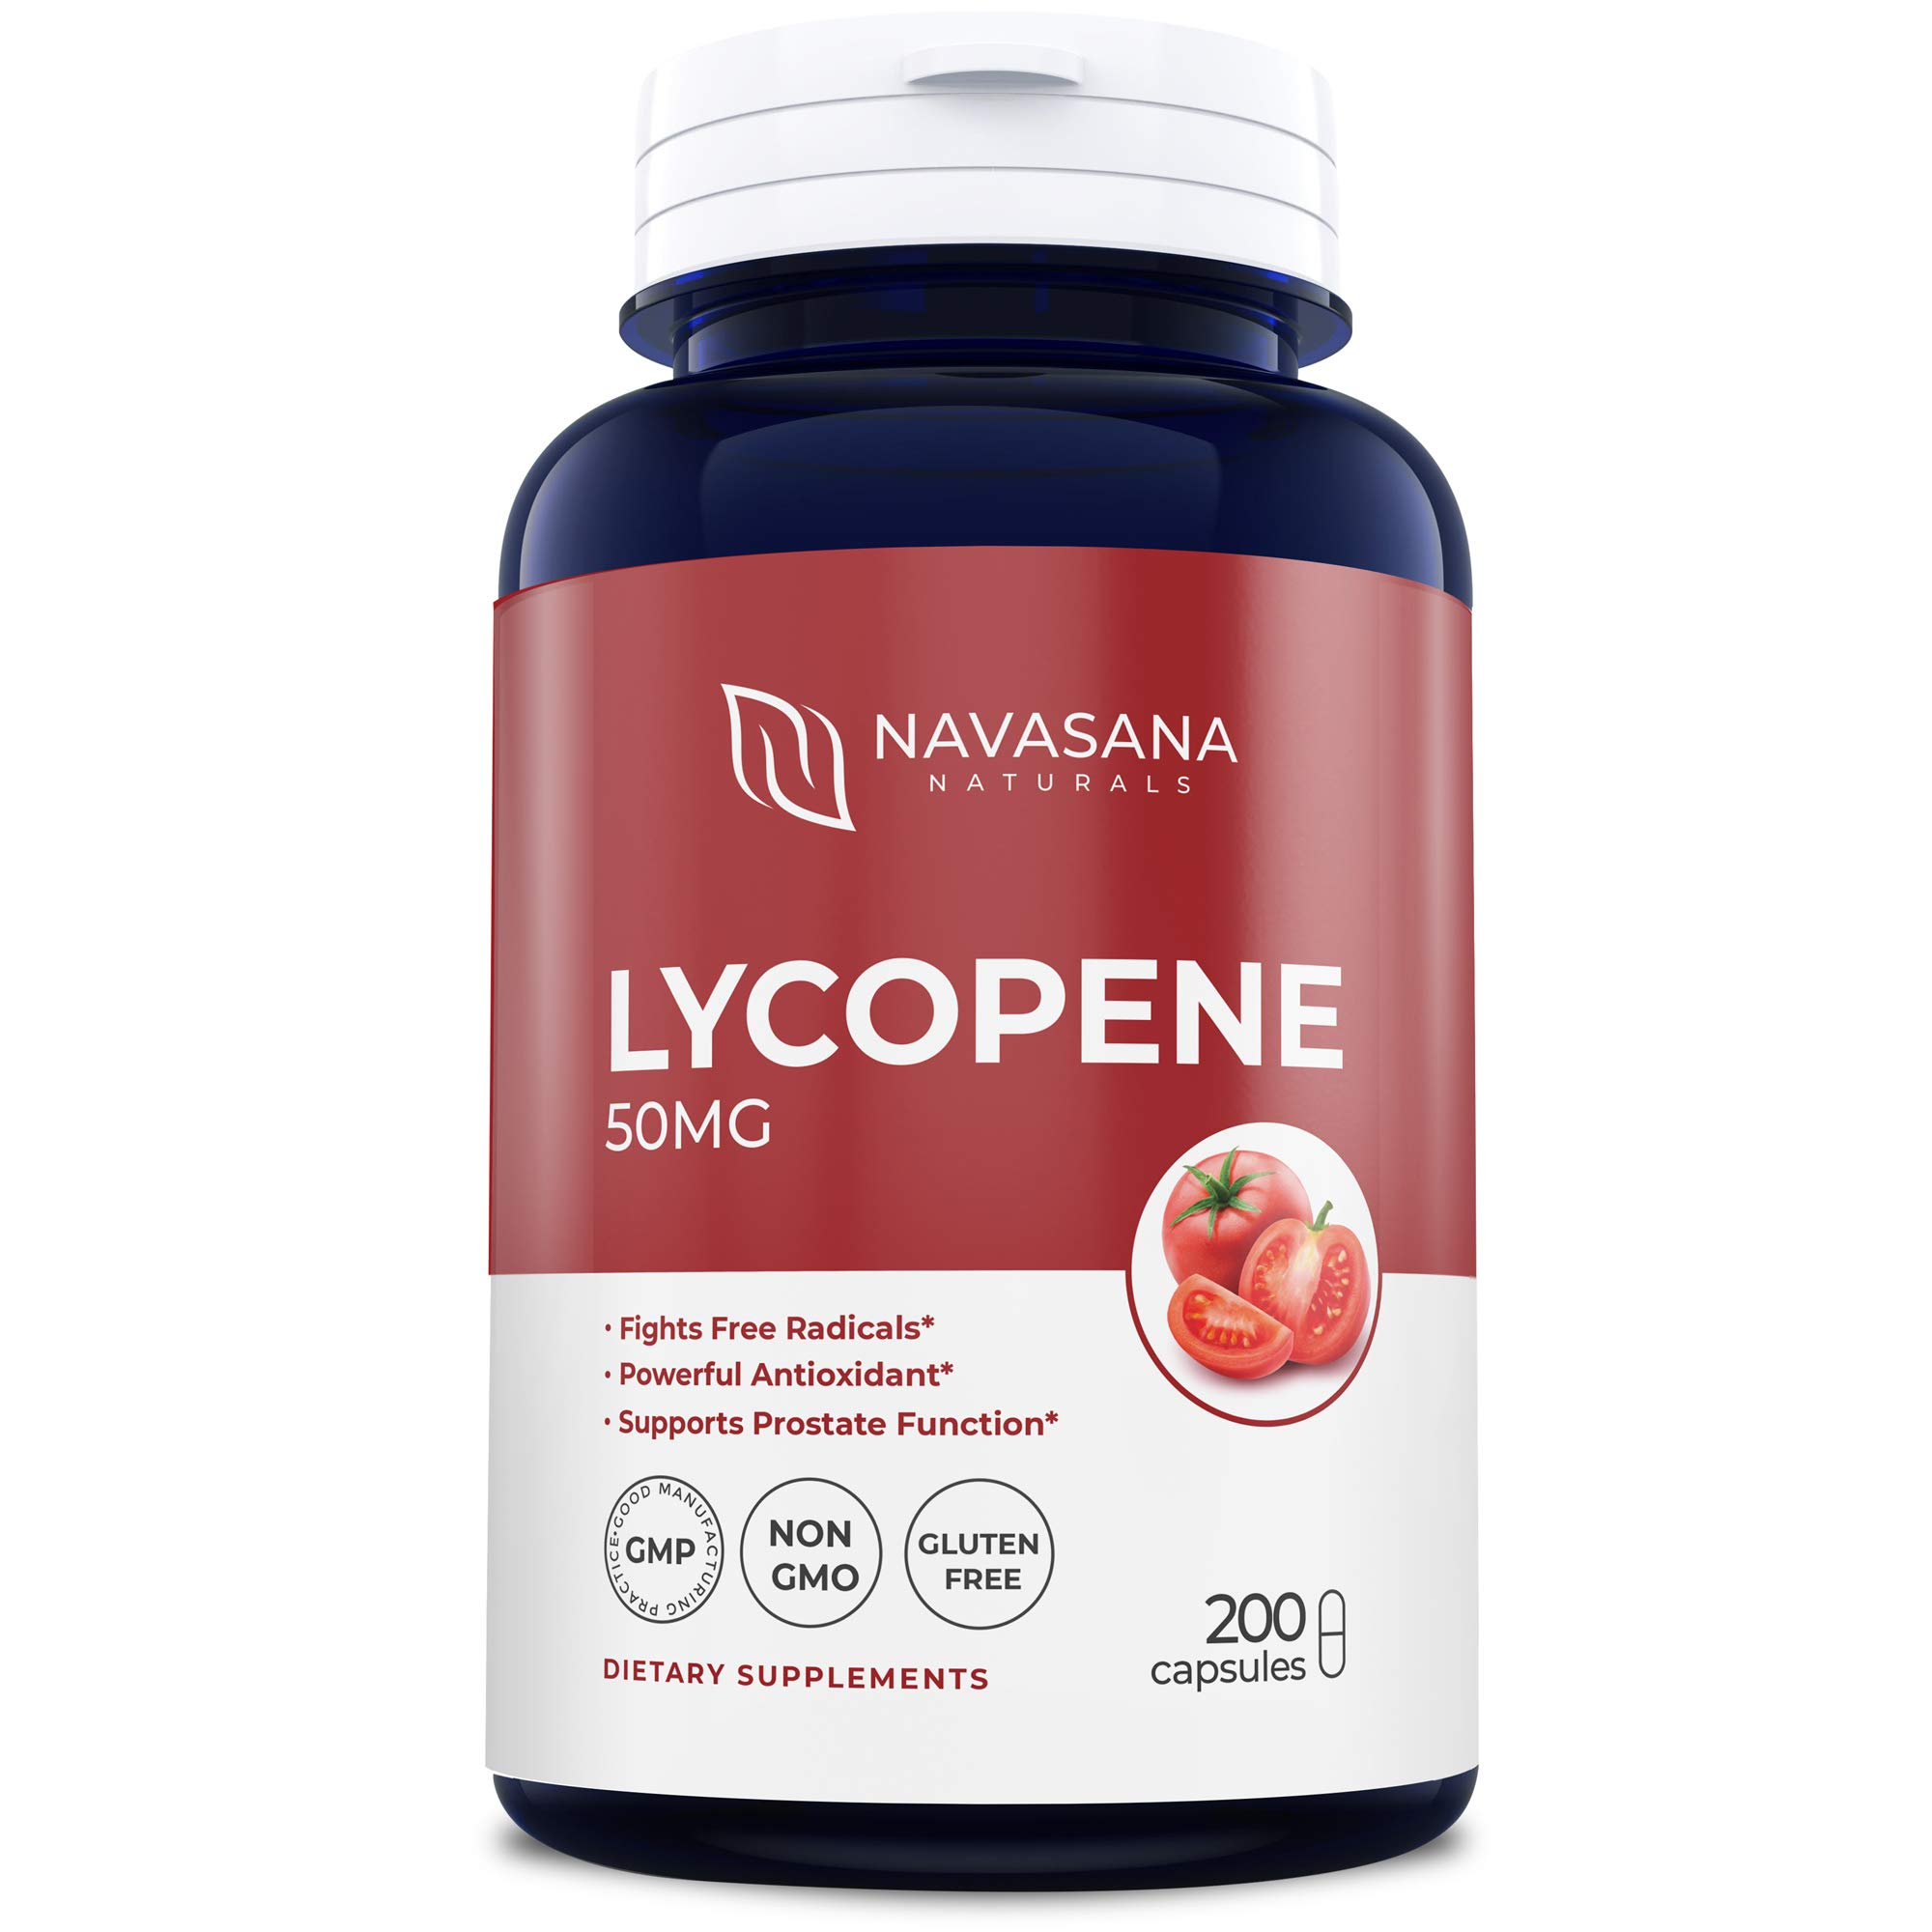 Lycopene 50MG - 200 Day Supply - 100% Natural Antioxidant - Non GMO - Gluten Free - Pure Tomato Extract for Cardiovascular Support, Prostate, Vision - 100% Risk Free Money Back Guarantee